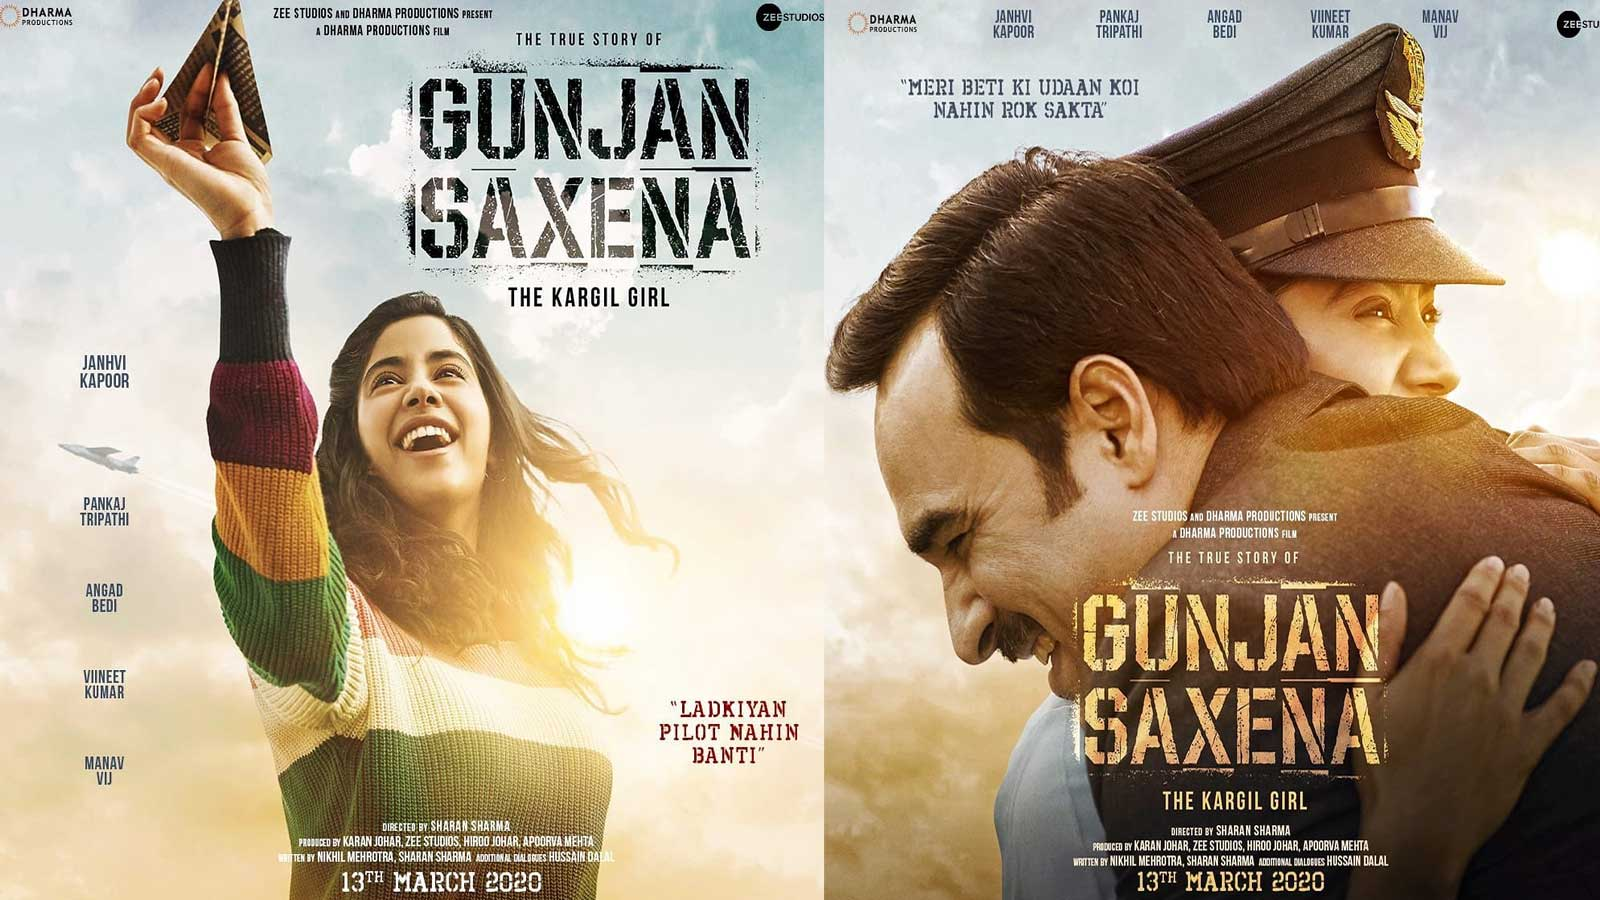 Janhvi Kapoor Starrer Gunjan Saxena The Kargil Girl Is A Journey About Ladkiyan Pilot Nahin Banti Hindi Movie News Bollywood Times Of India